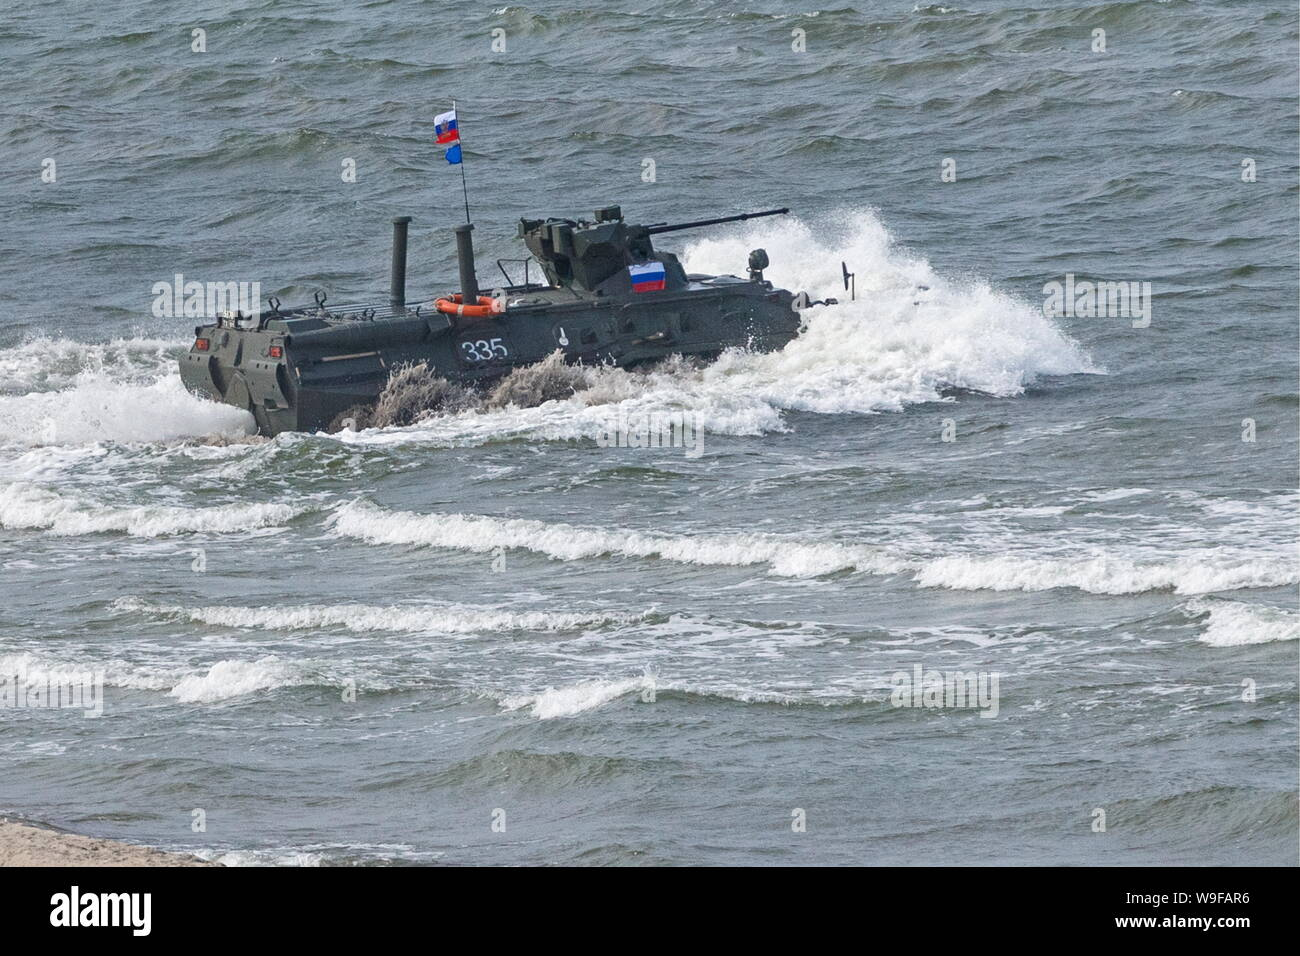 Russia. 13th Aug, 2019. KALININGRAD REGION, RUSSIA - AUGUST 13, 2019: The amphibious combat vehicle of the Russian team during the Seaborne Assault Ñontest of the 2019 International Army Games, at Khmelevka, Kaliningrad Region. Vadim Savitsky/Press Office of the Ministry of Defence of the Russian Federation/TASS Credit: ITAR-TASS News Agency/Alamy Live News Stock Photo